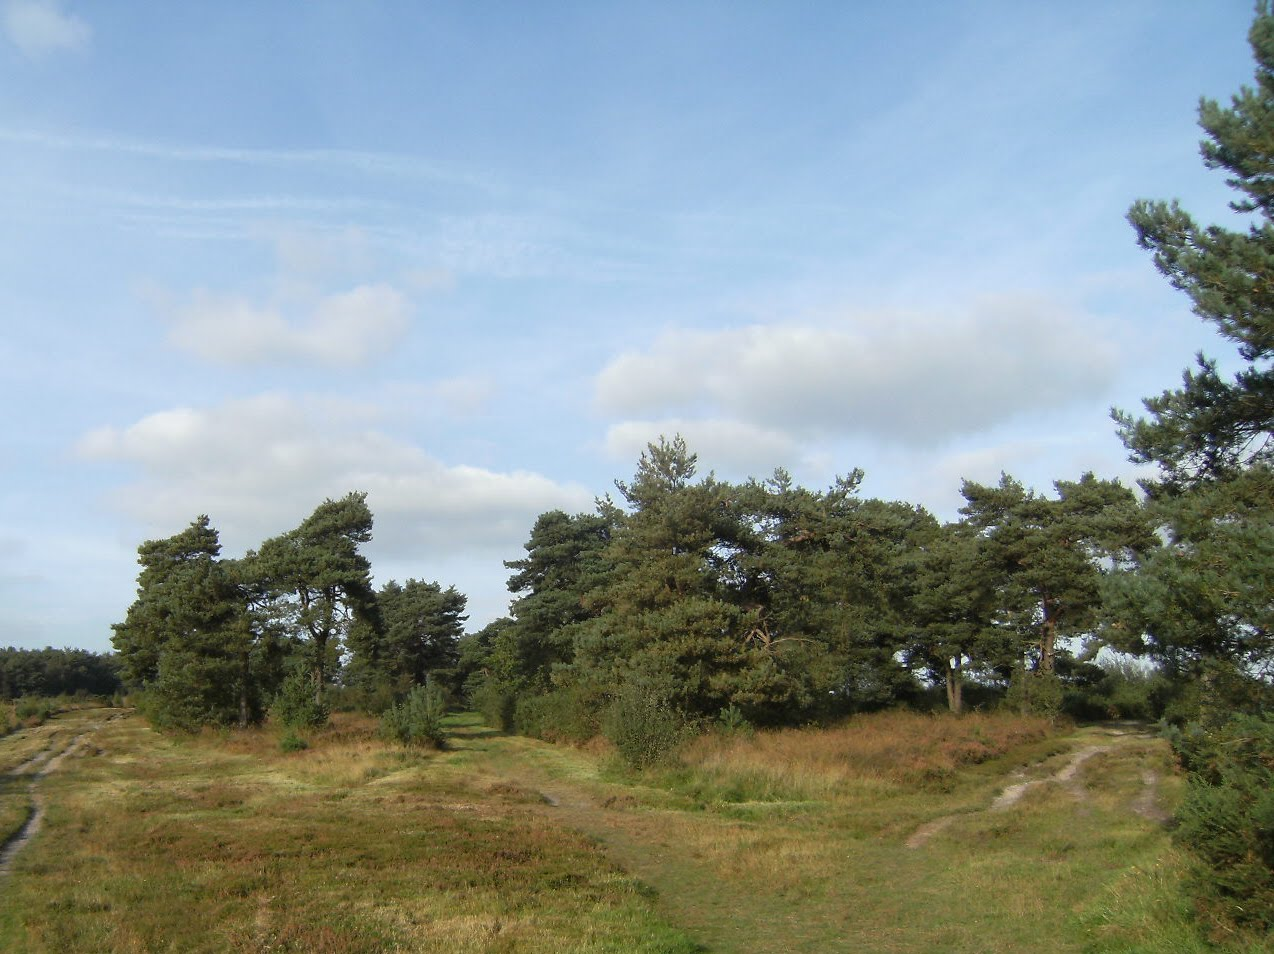 DSCF9717 Through Ashdown Forest